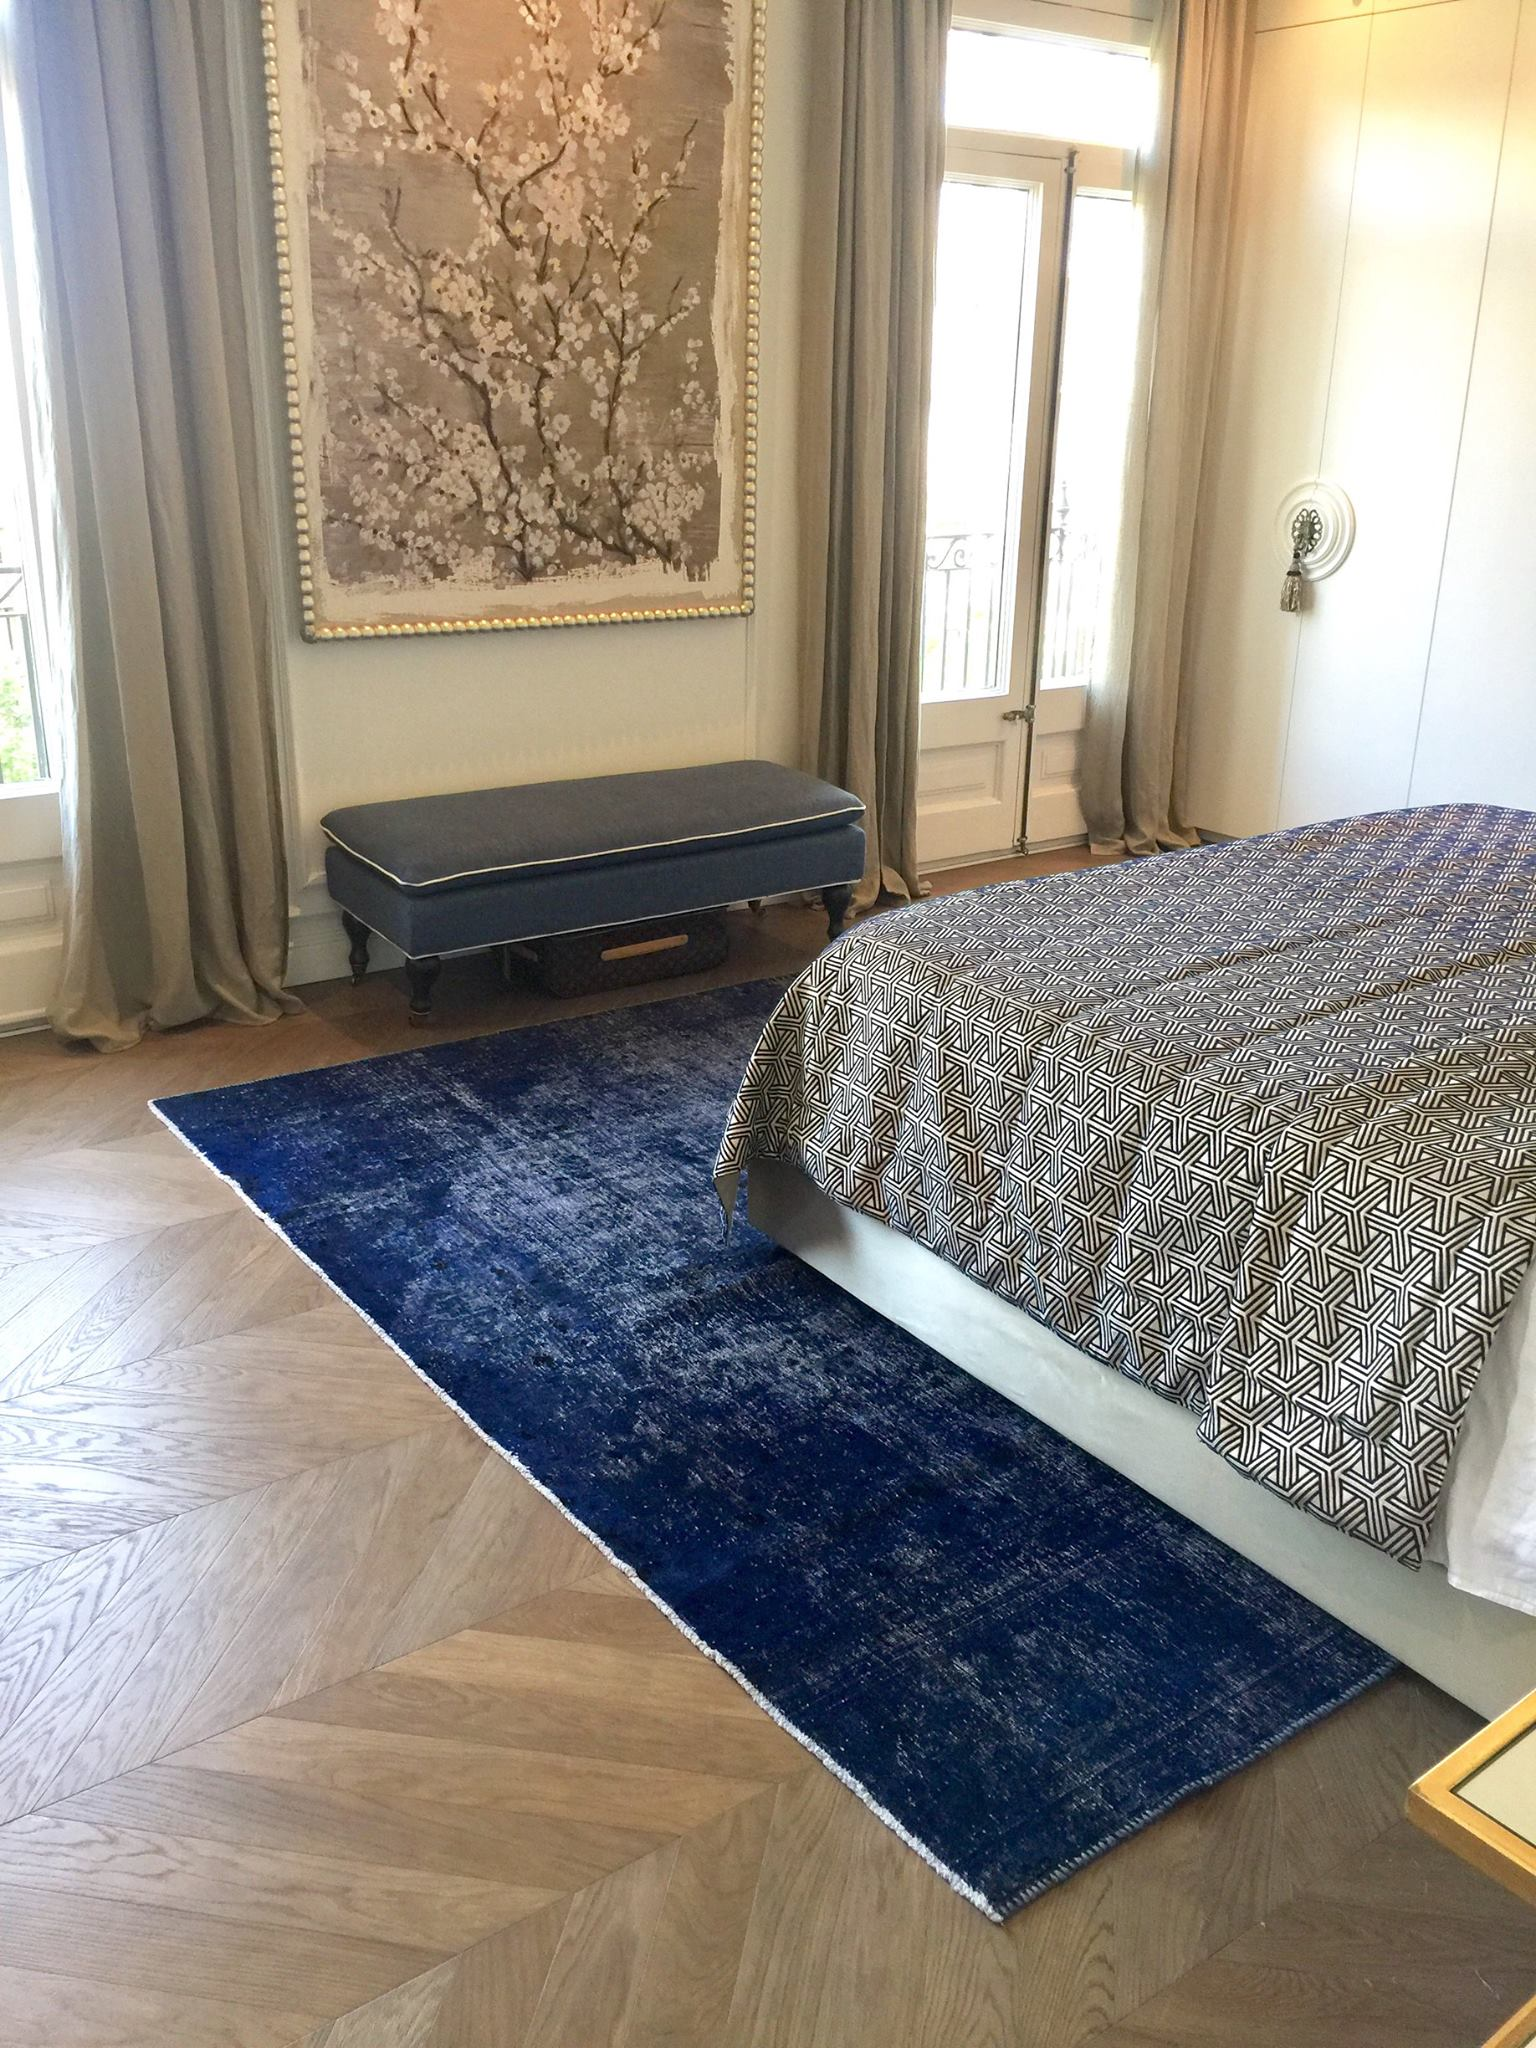 A Persian Vintage Rug Under A Bed